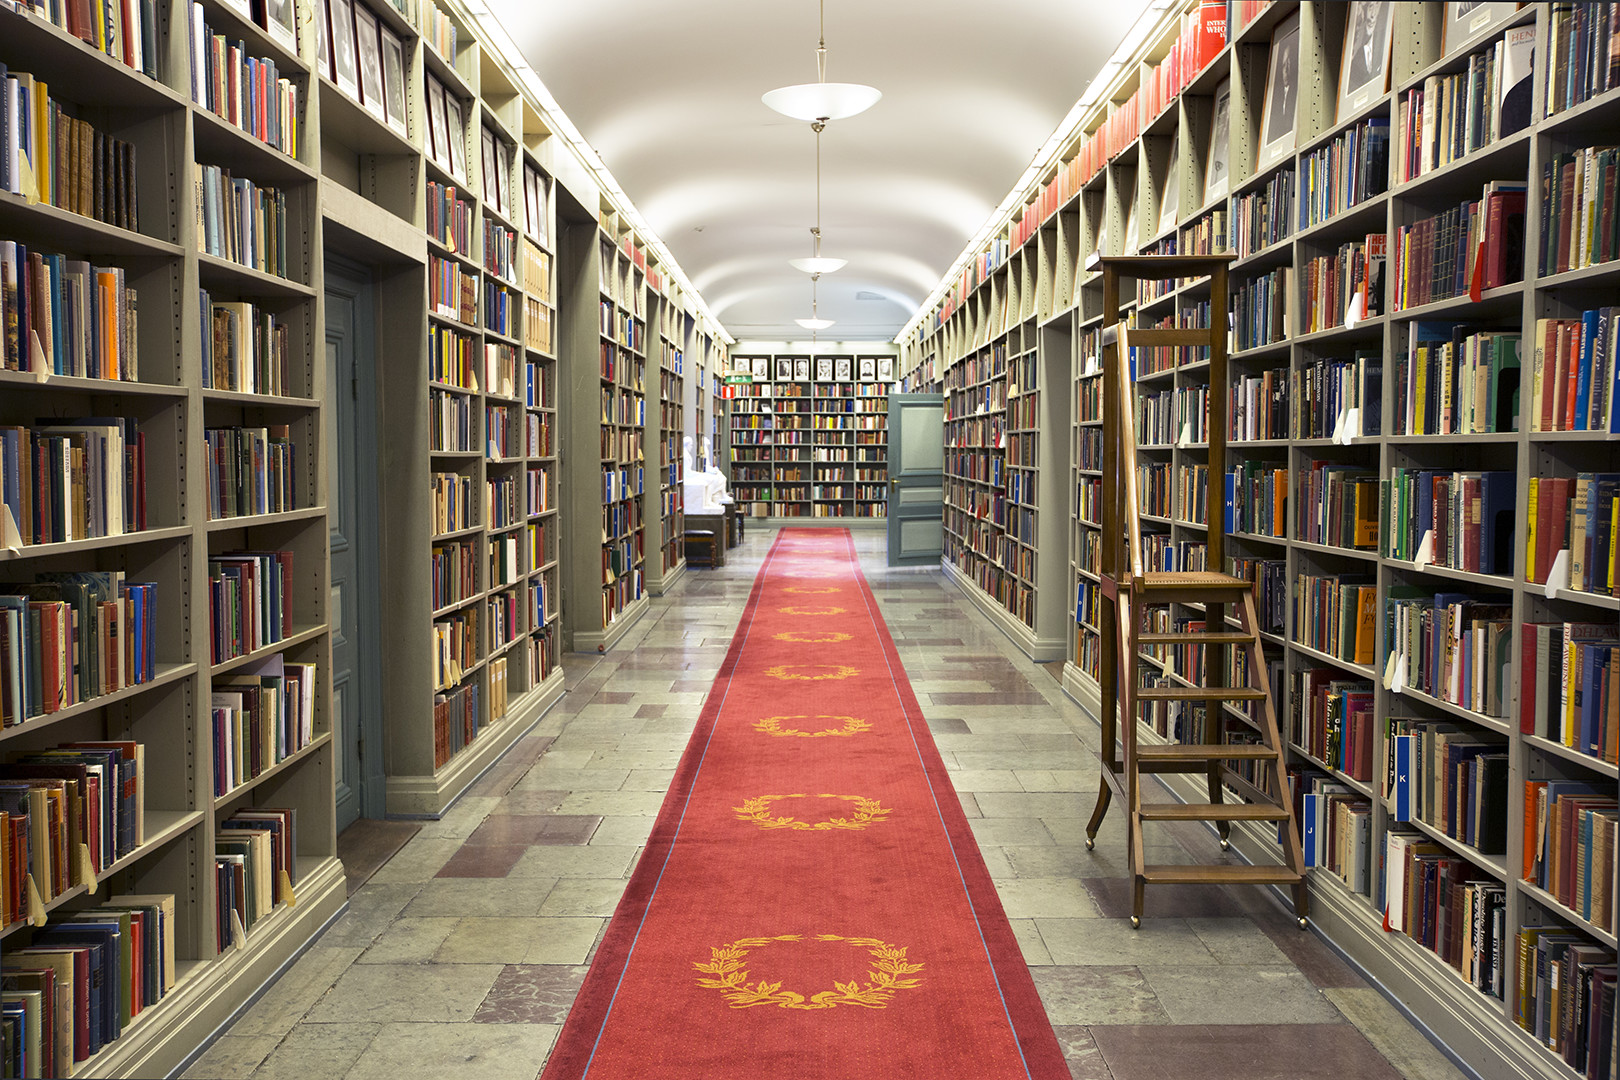 The Swedish Academy Nobel Library